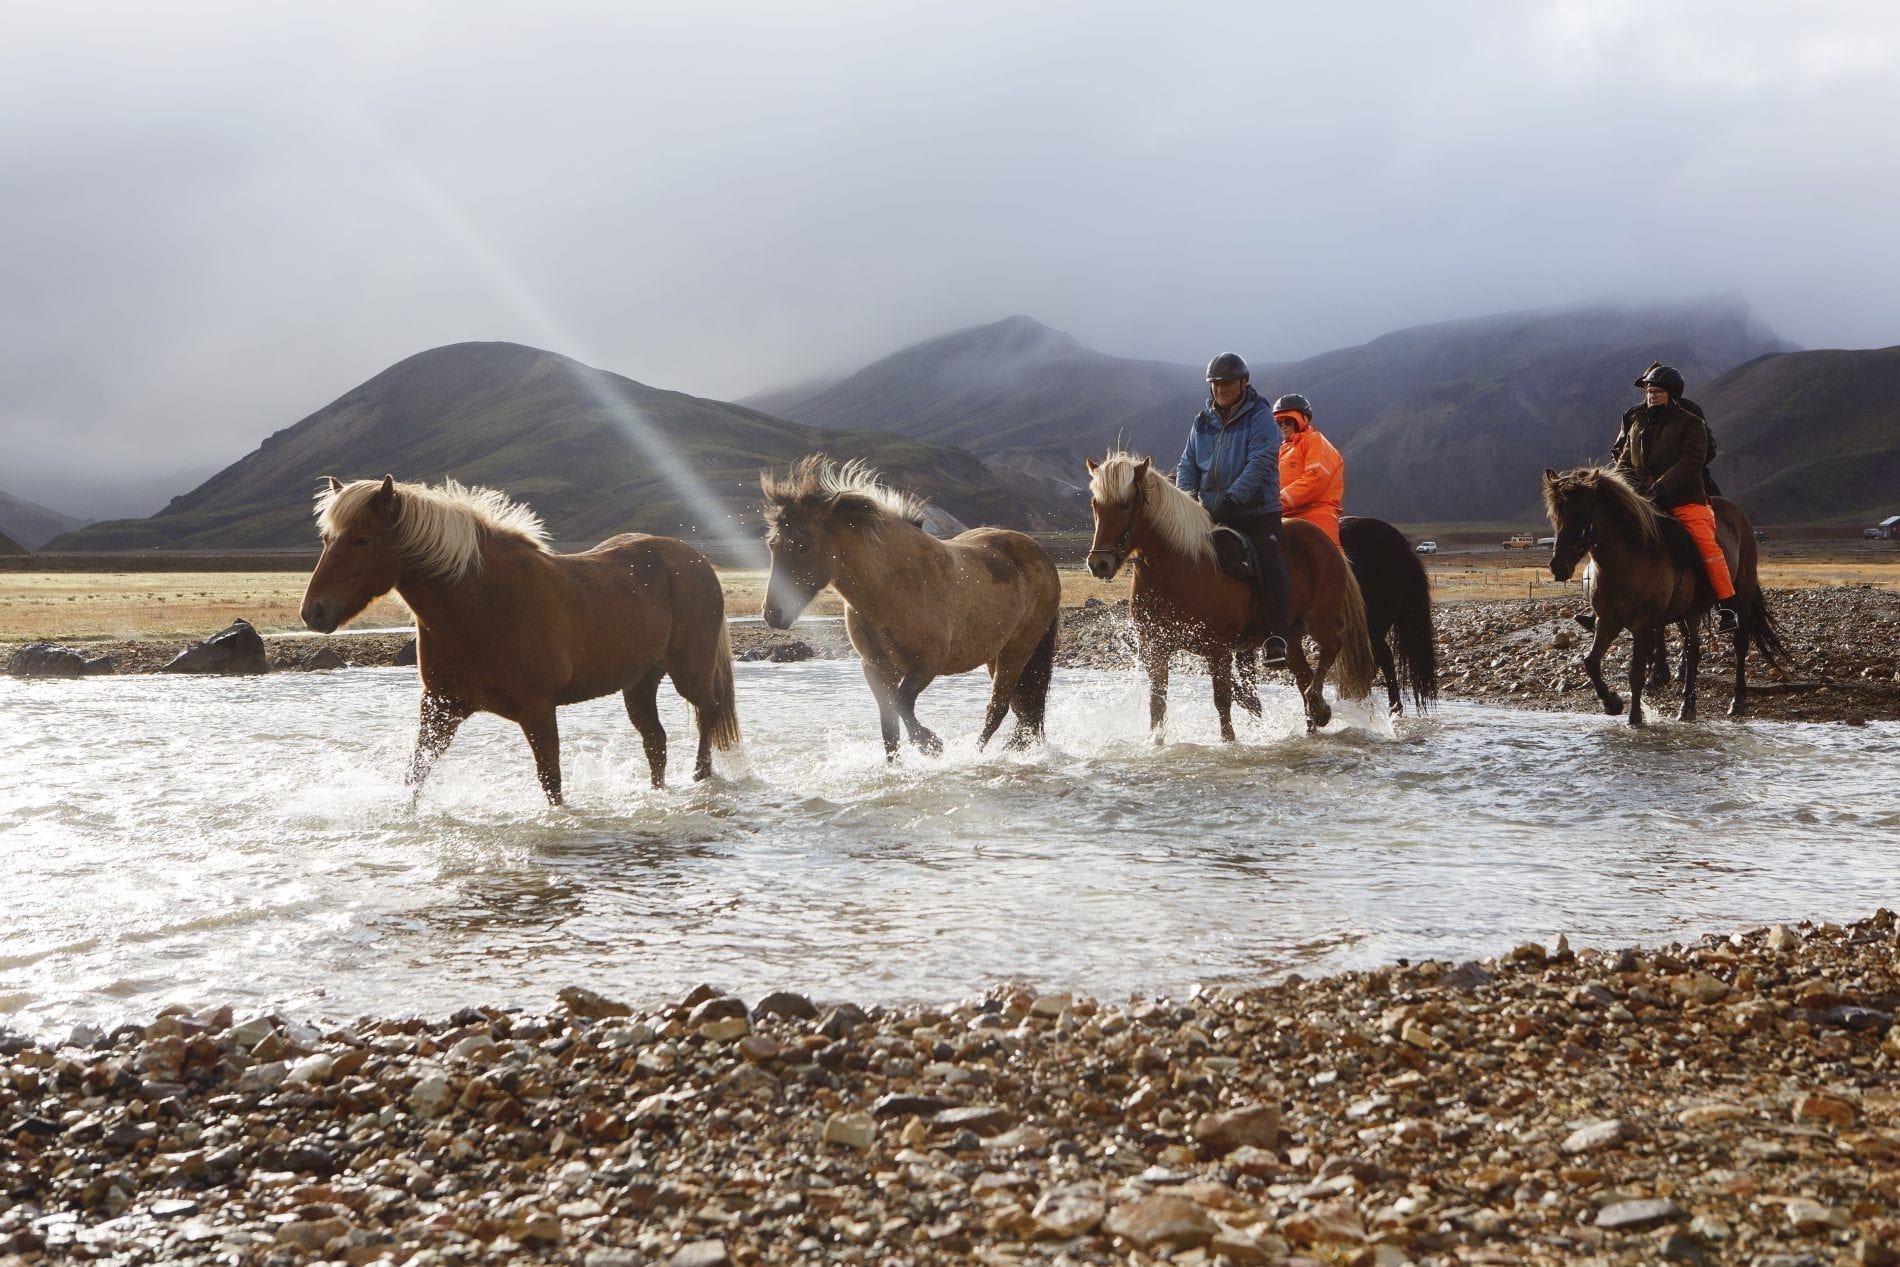 Horseriding over a river in the vicinity of Mt. Hekla